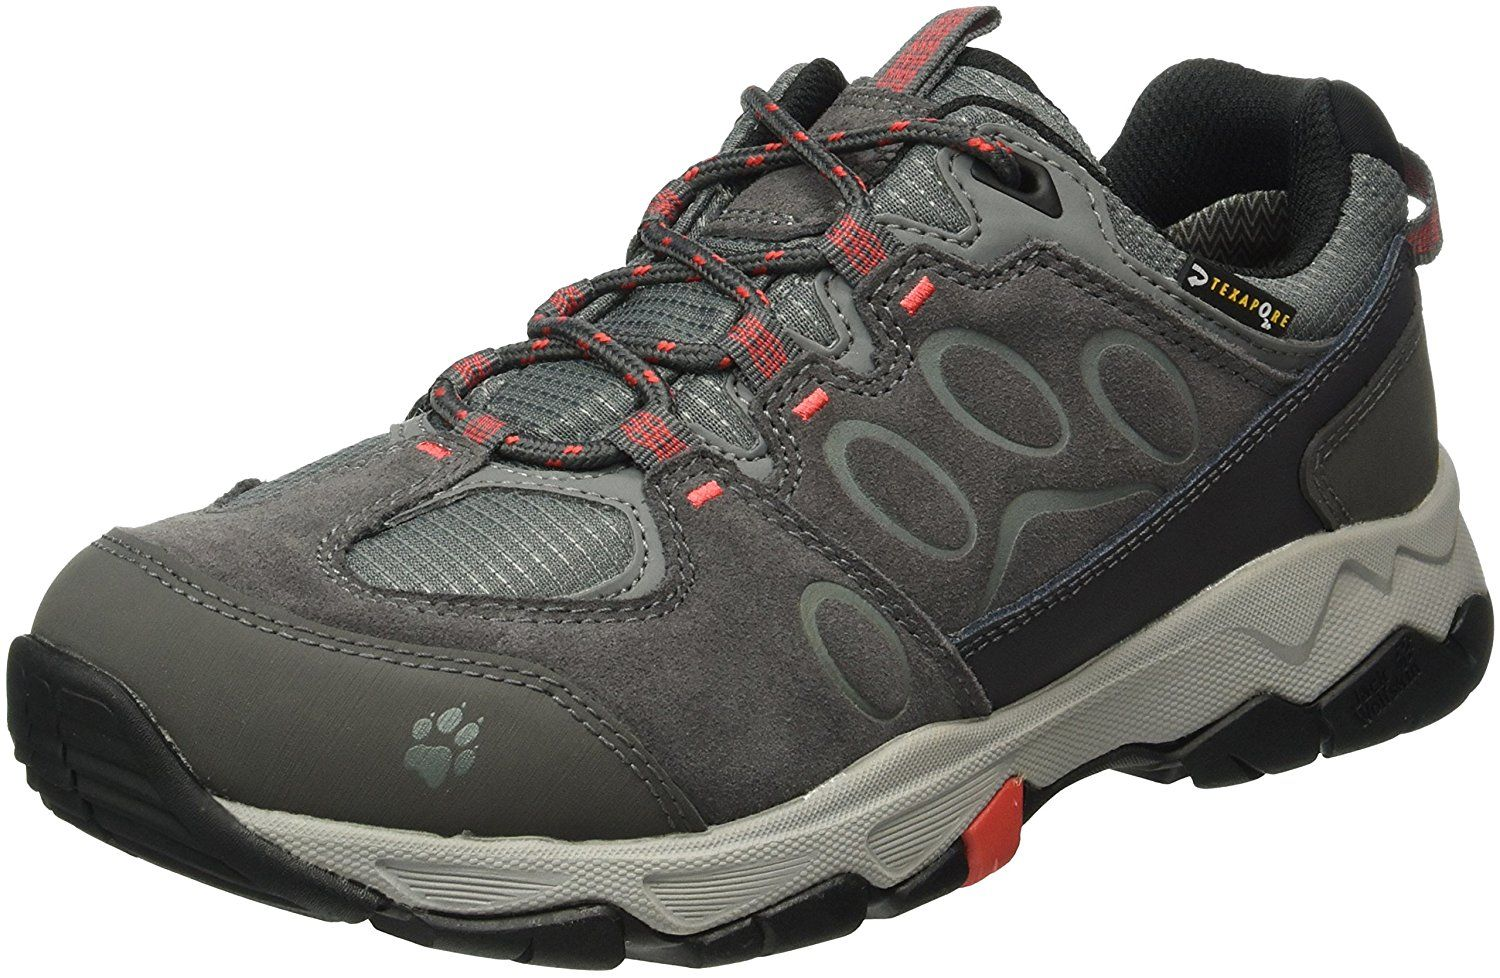 Jack Wolfskin Women's Mtn Attack 5 Texapore Low W Hiking Shoe *** Want additional info? Click on the image.